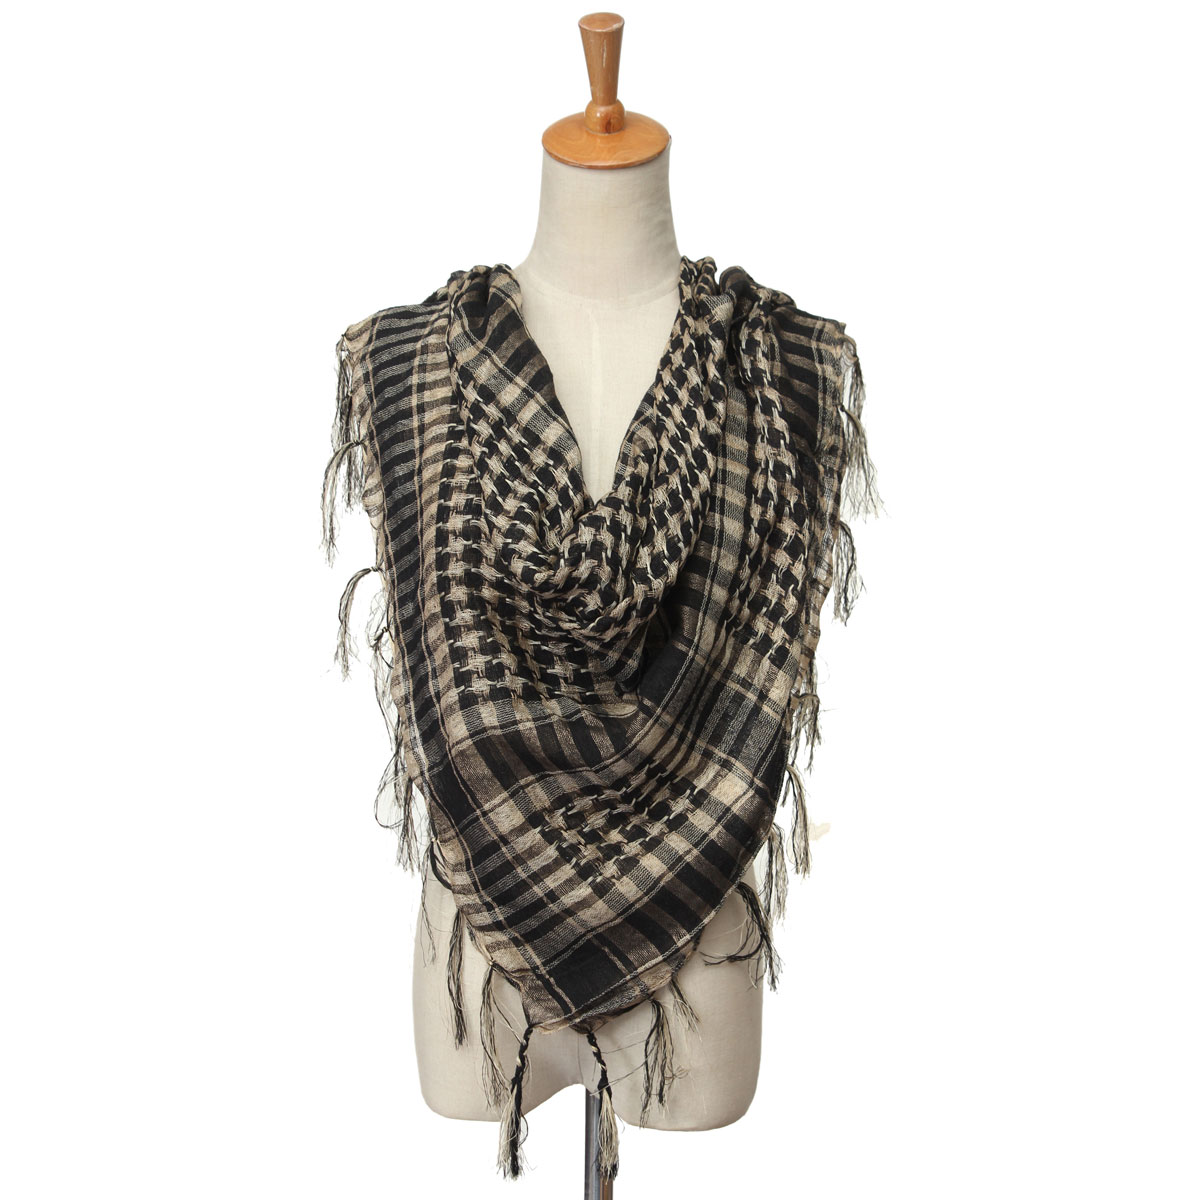 Unisex Women Men Army Military Tactical Arab Shemagh KeffIyeh Tassel Shawl Wrap Stole Scarf